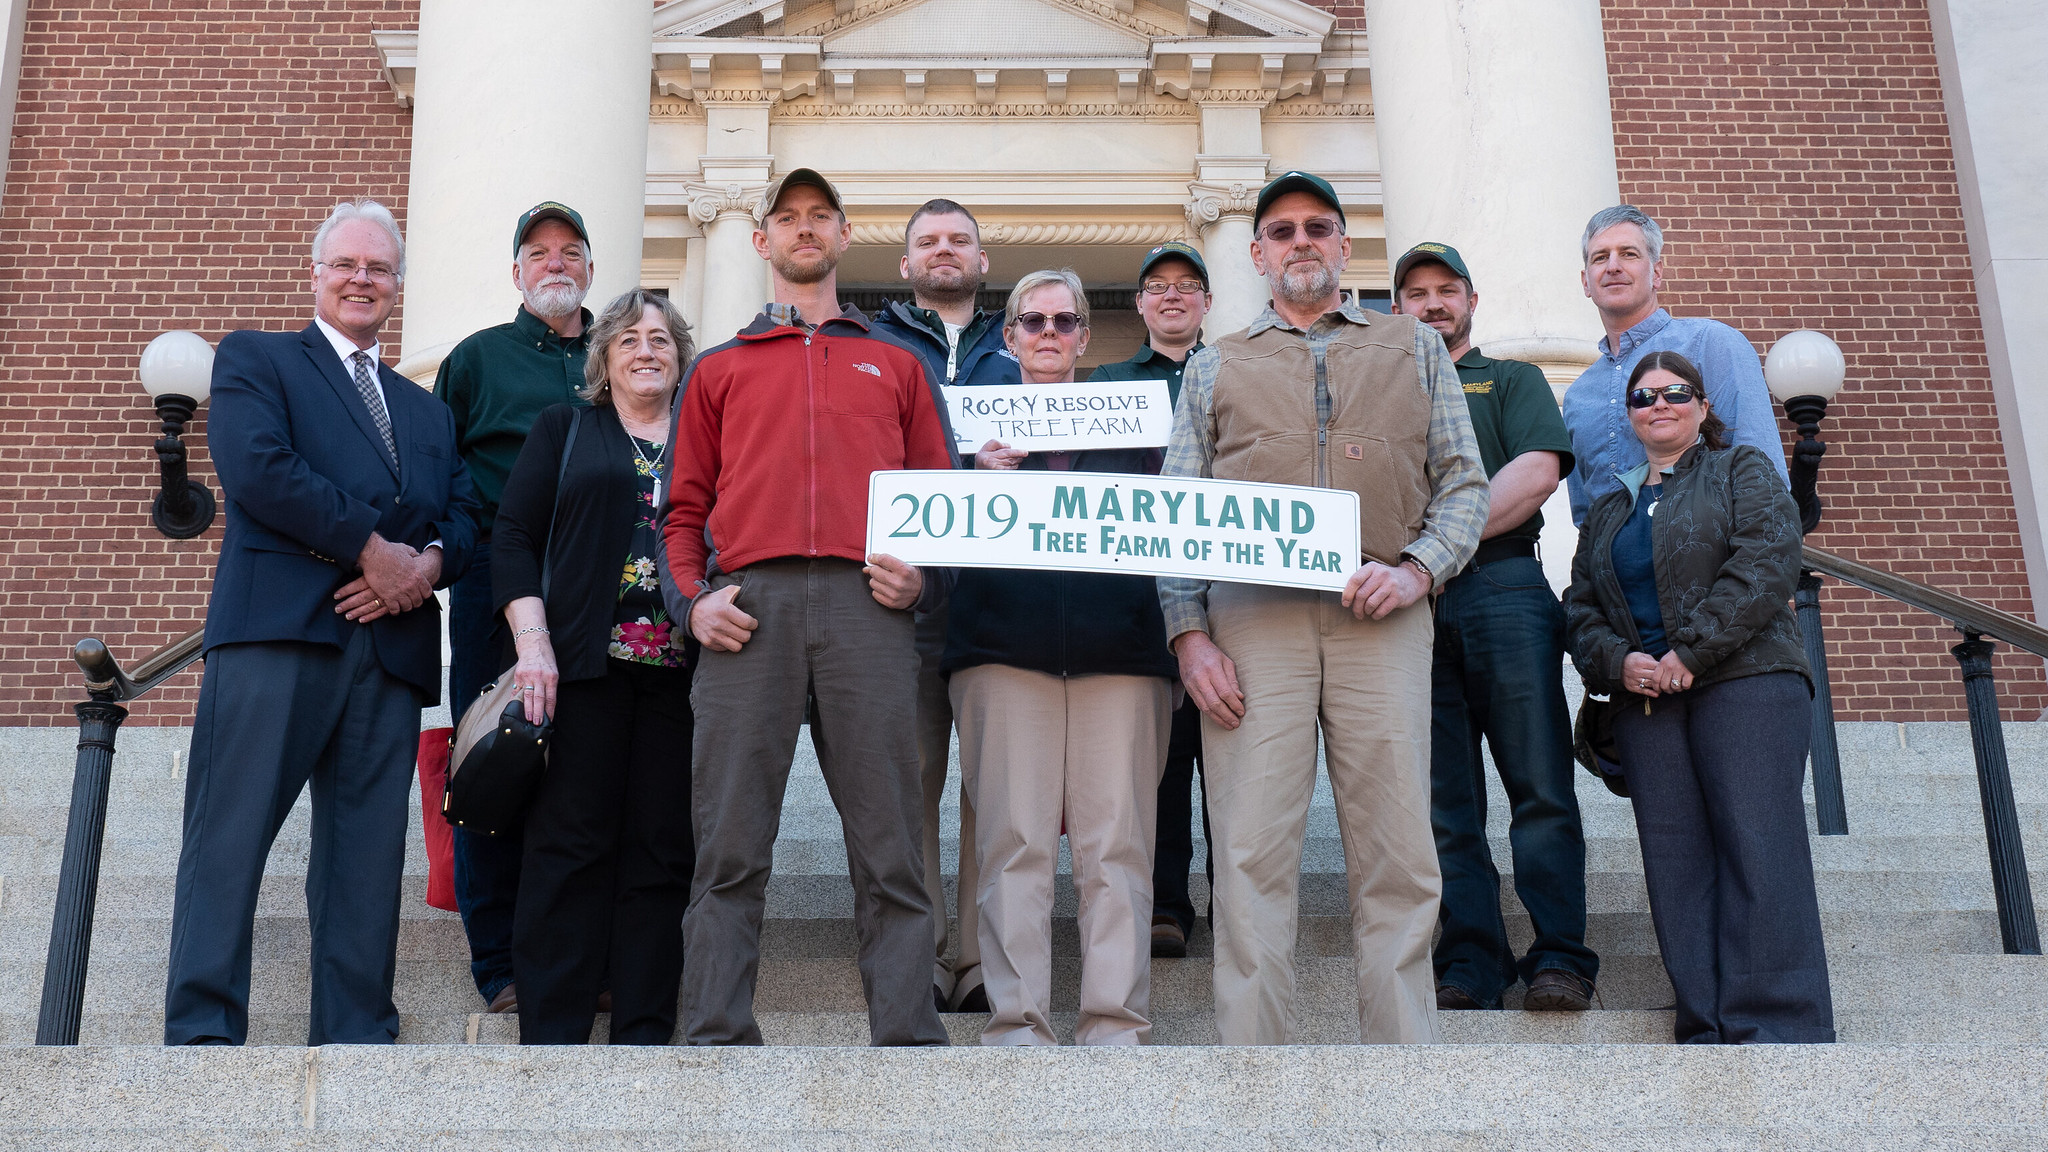 Photo of 2019 Maryland Tree Farm of the Year recipients